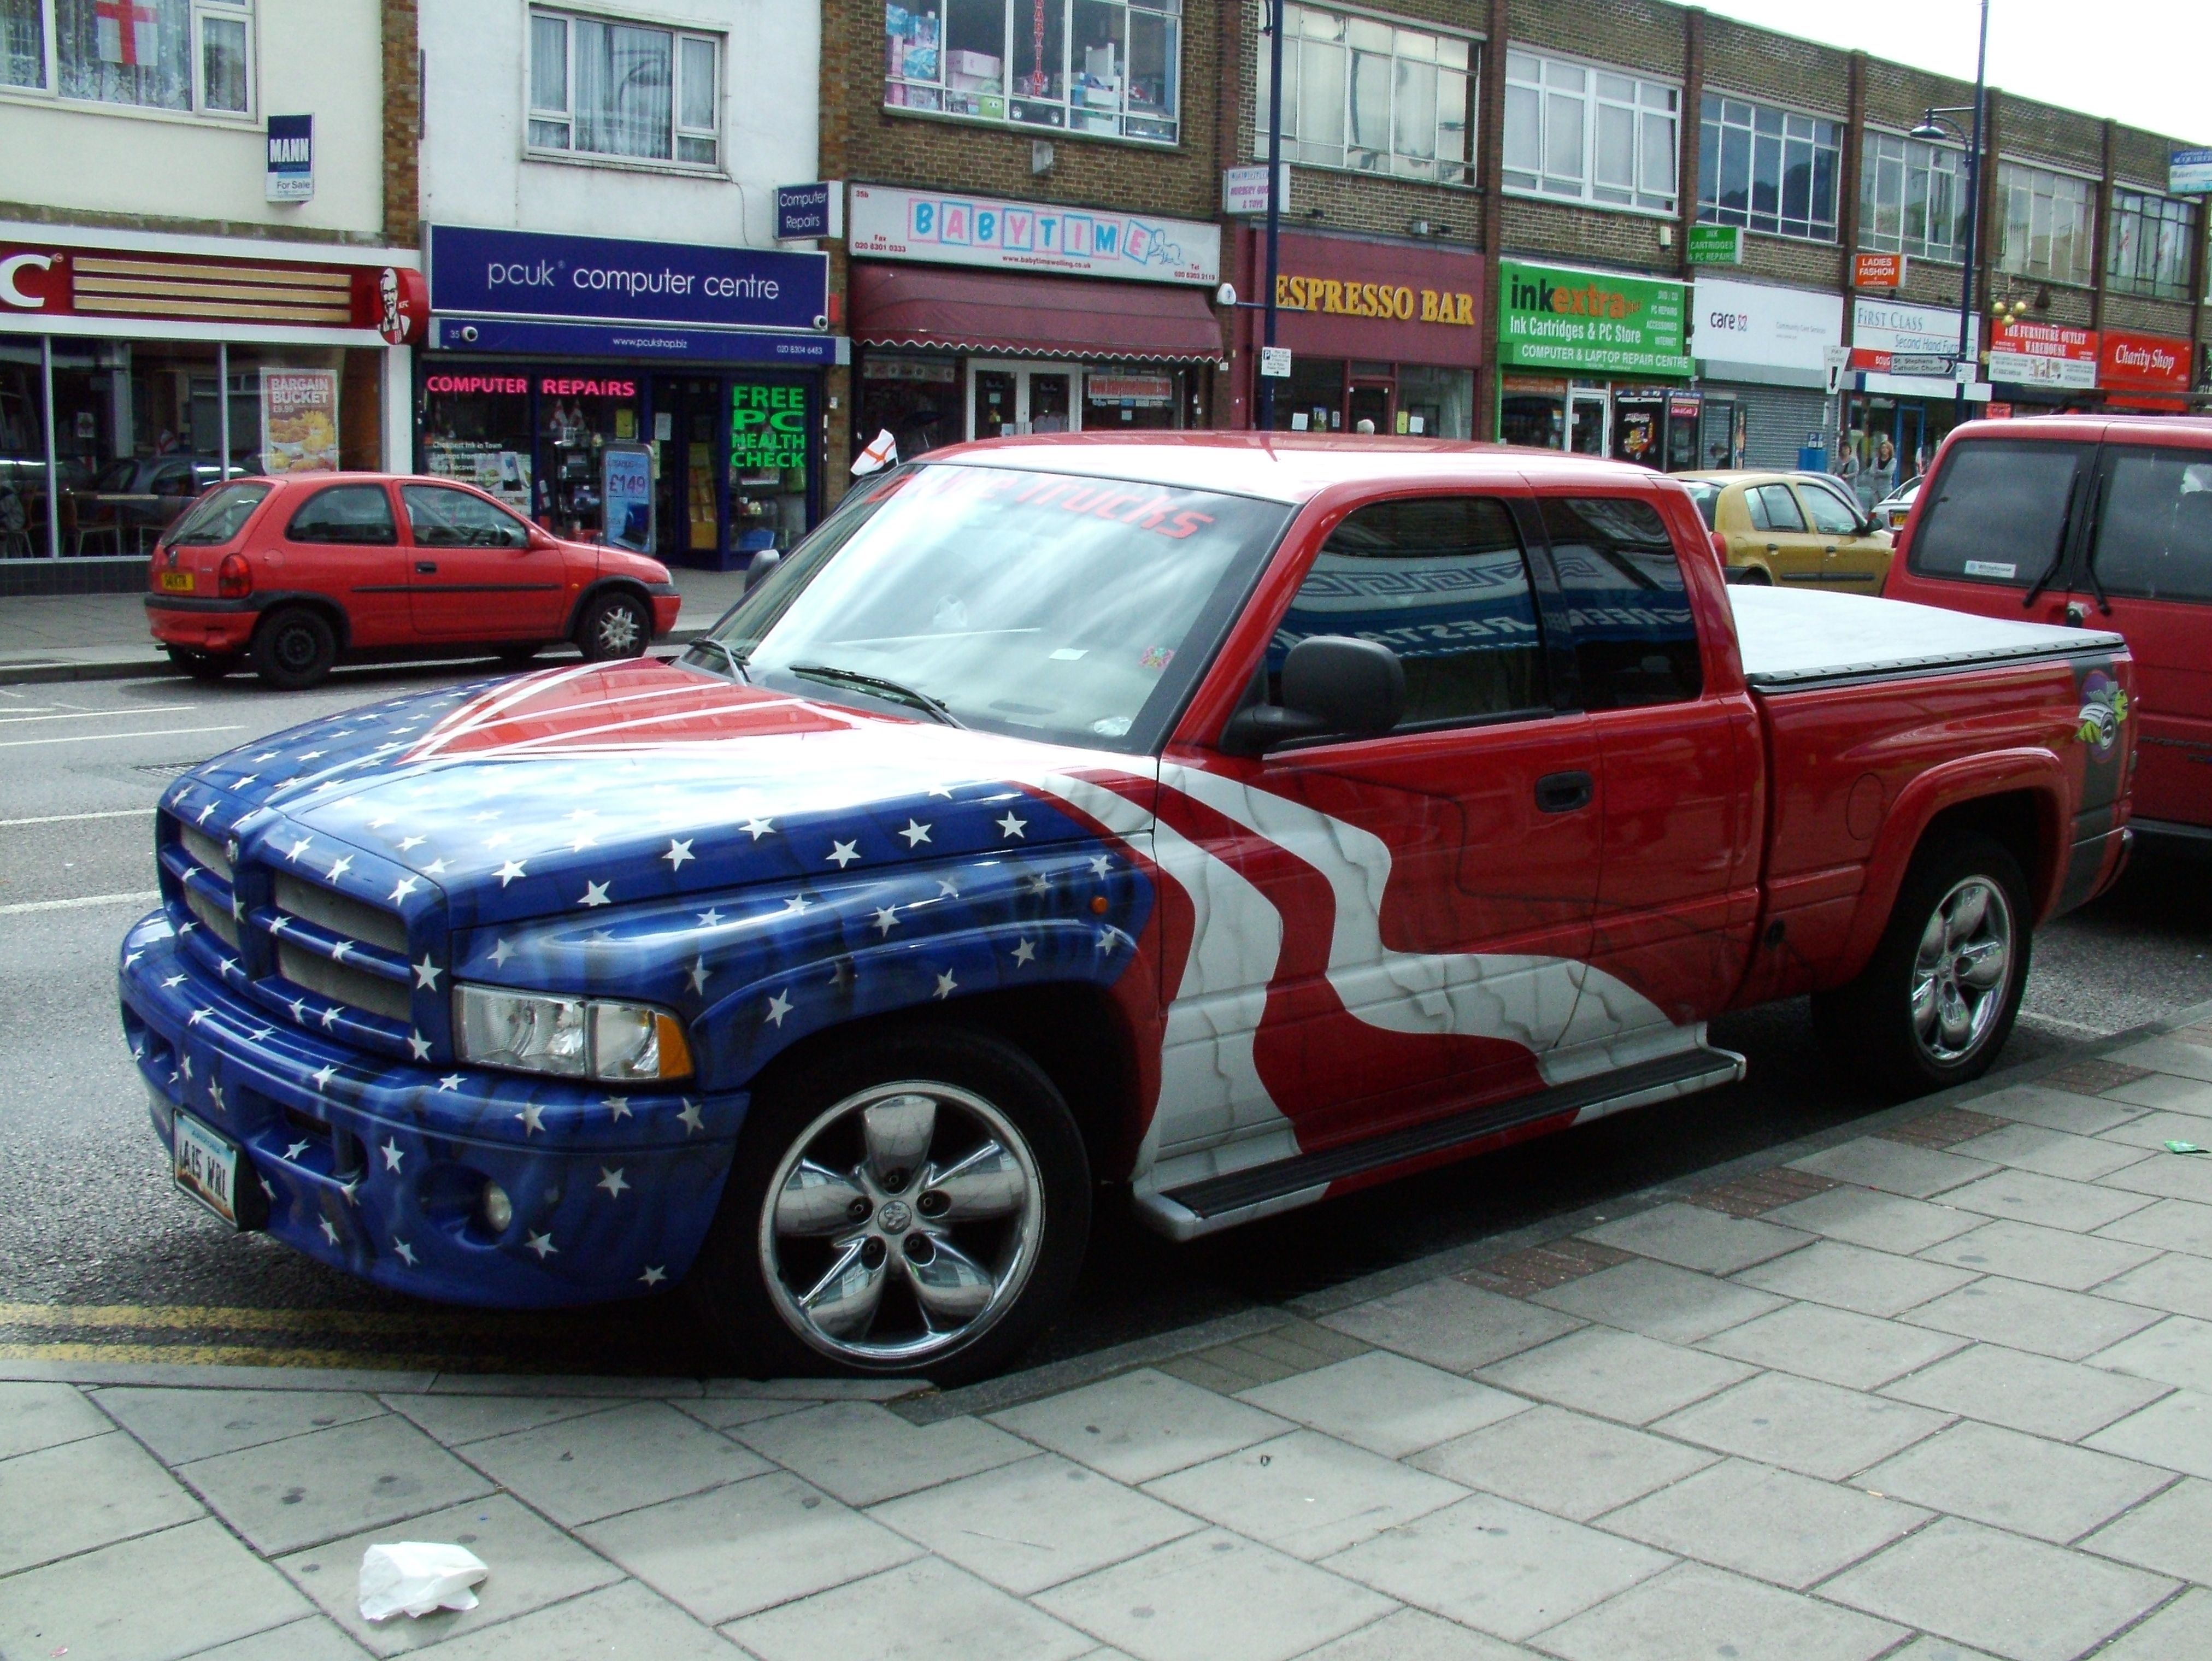 Now there's someone who loves 'MERIC Ram trucks, Dodge